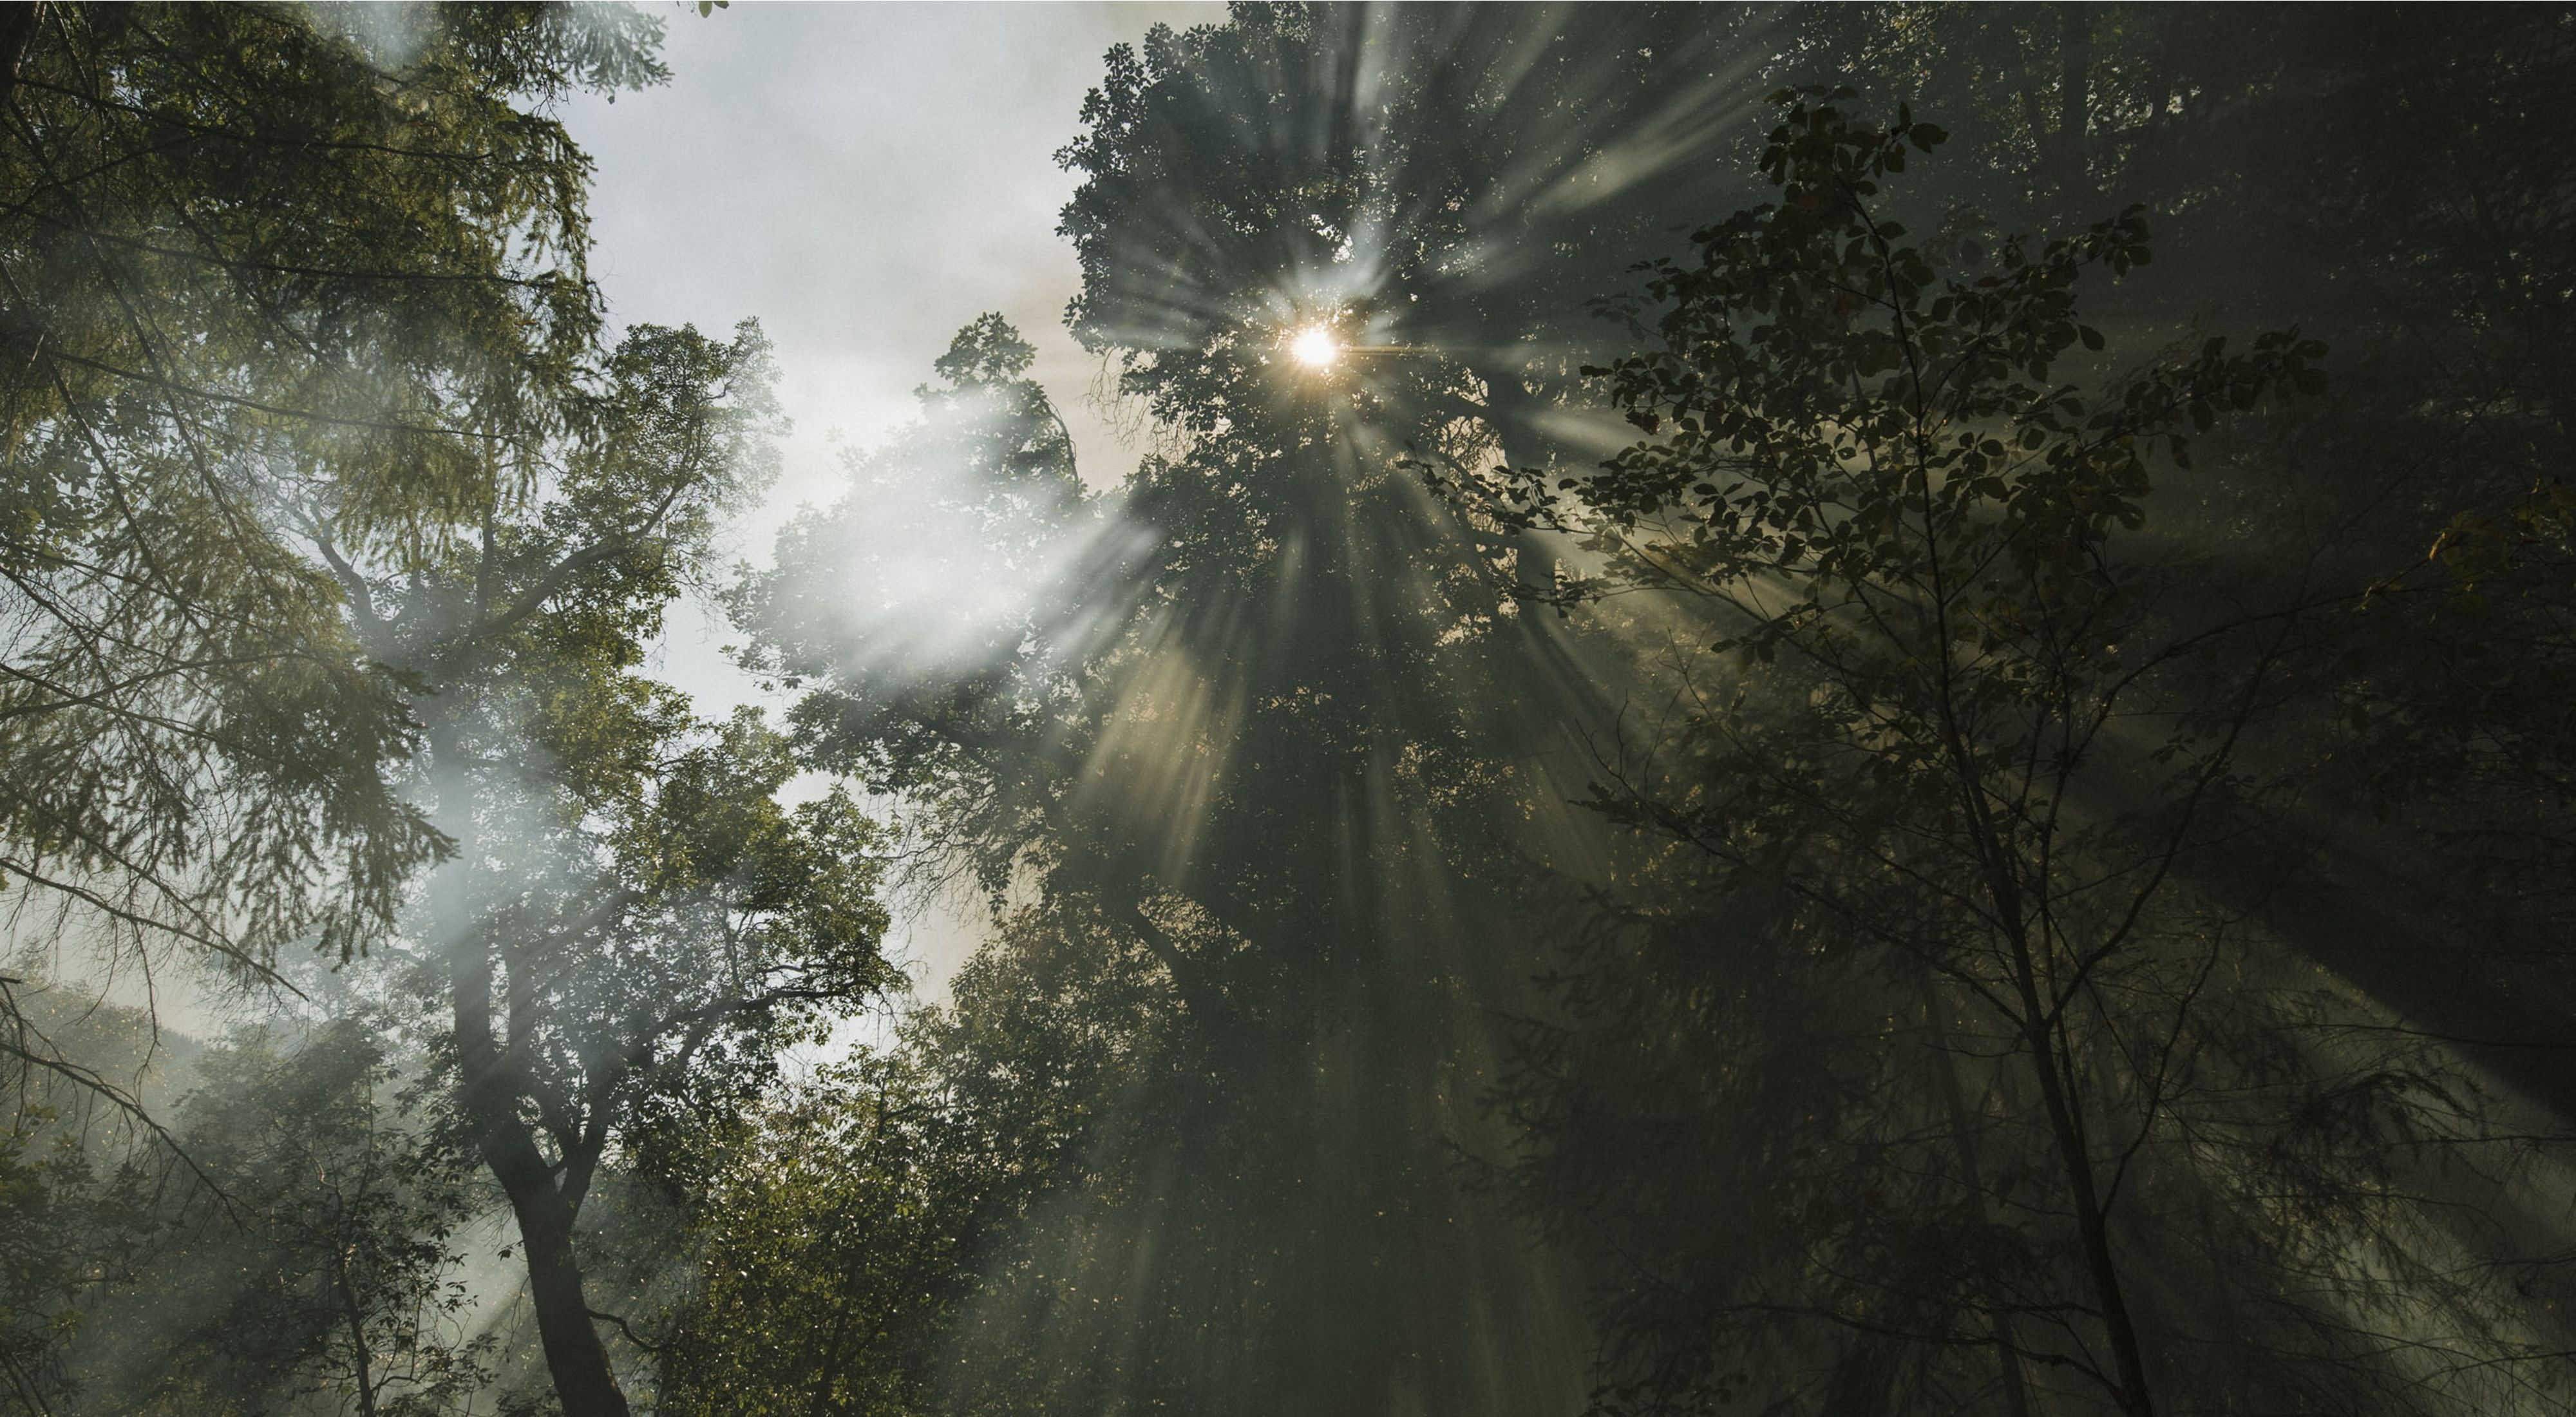 The sun shines weakly through trees and the smoke of a controlled burn in a California forest.